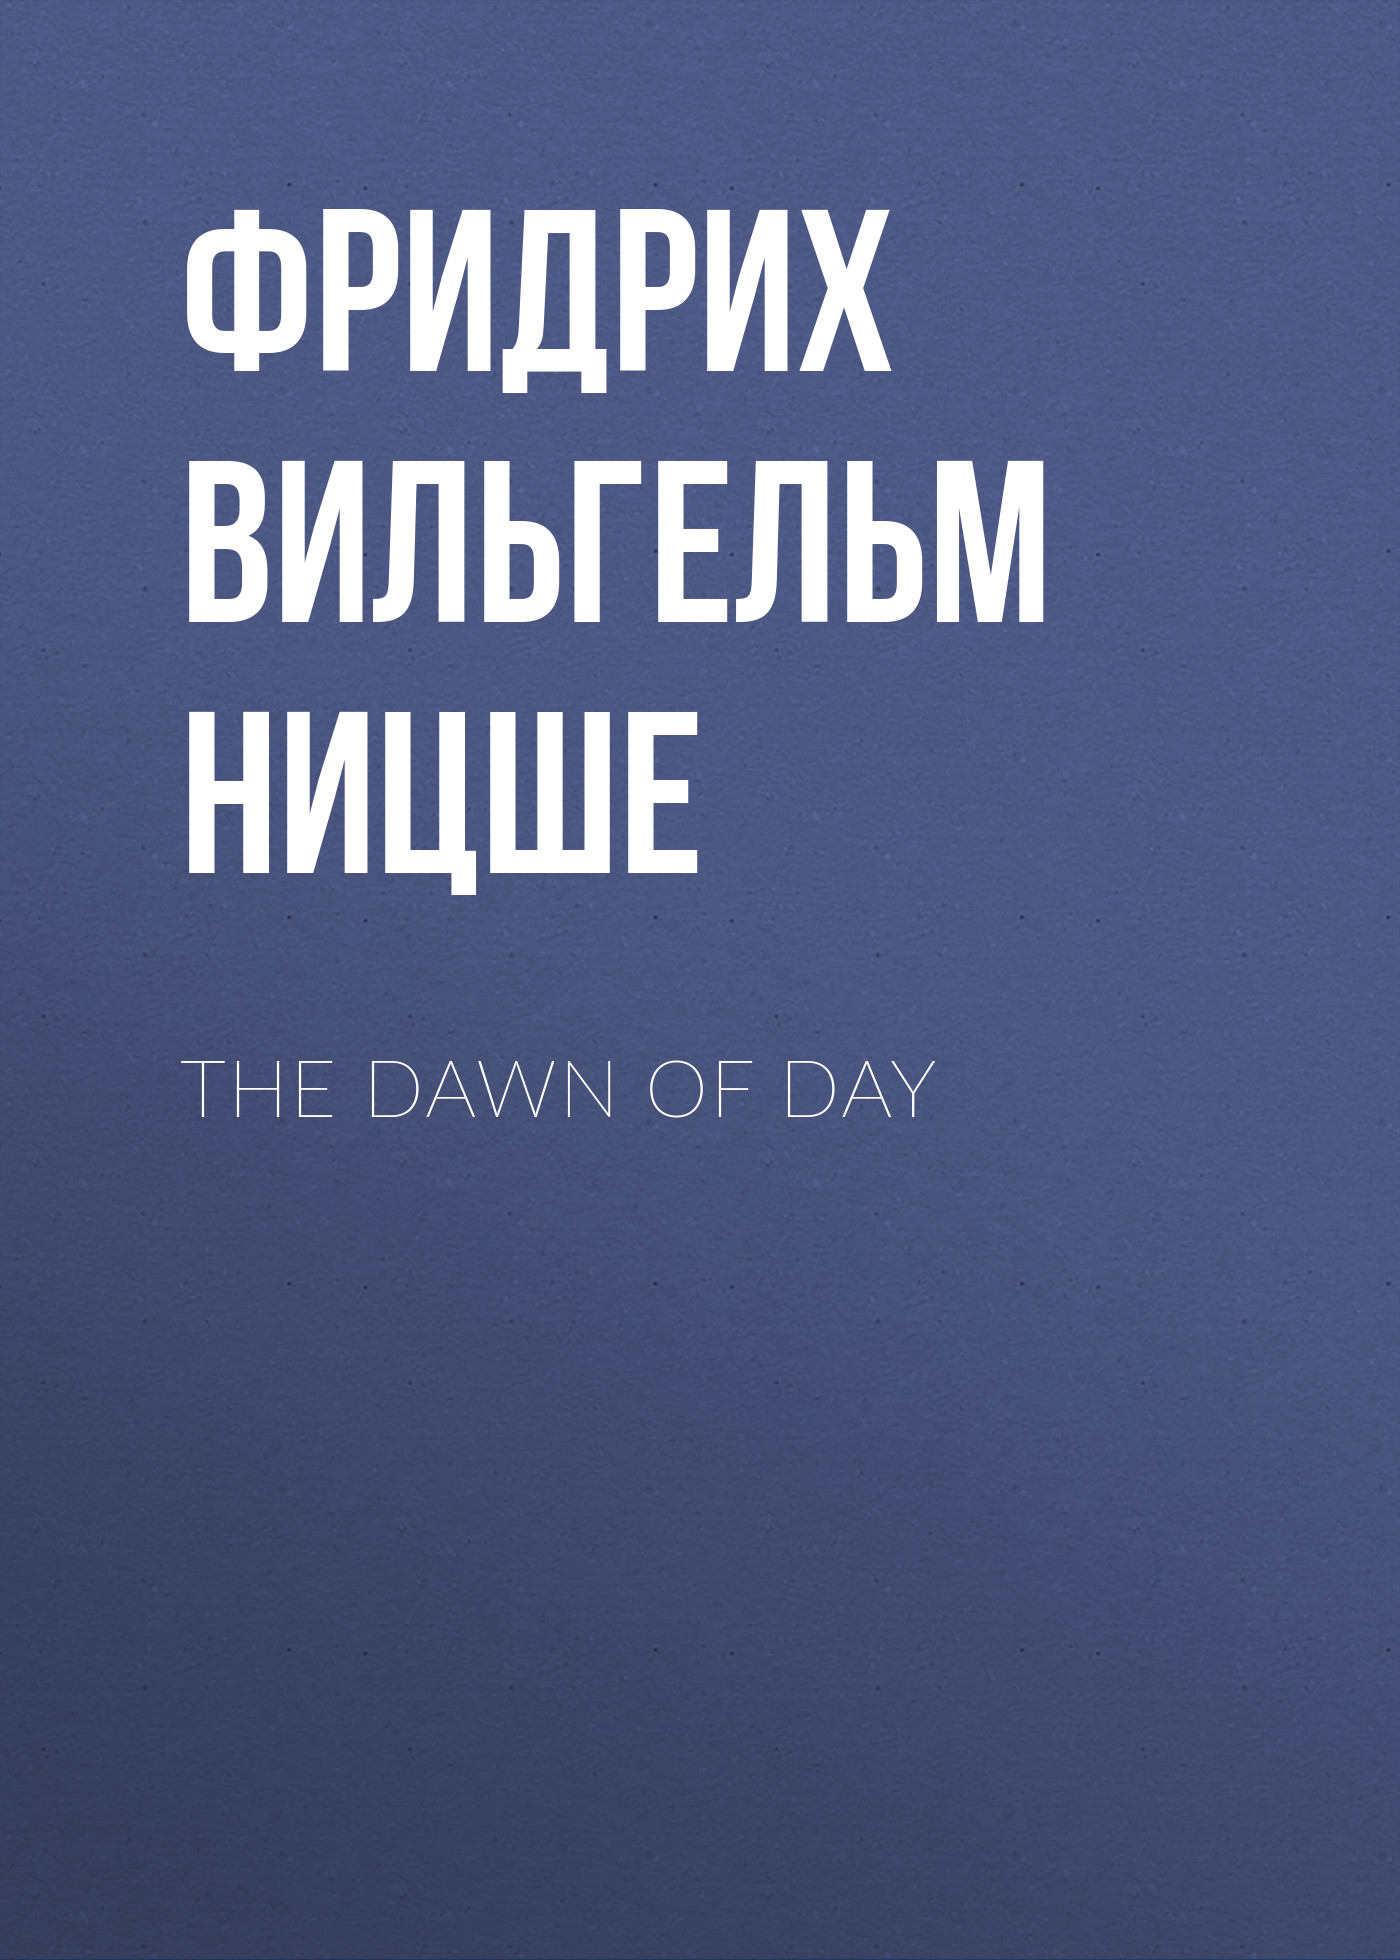 Фридрих Вильгельм Ницше The Dawn of Day